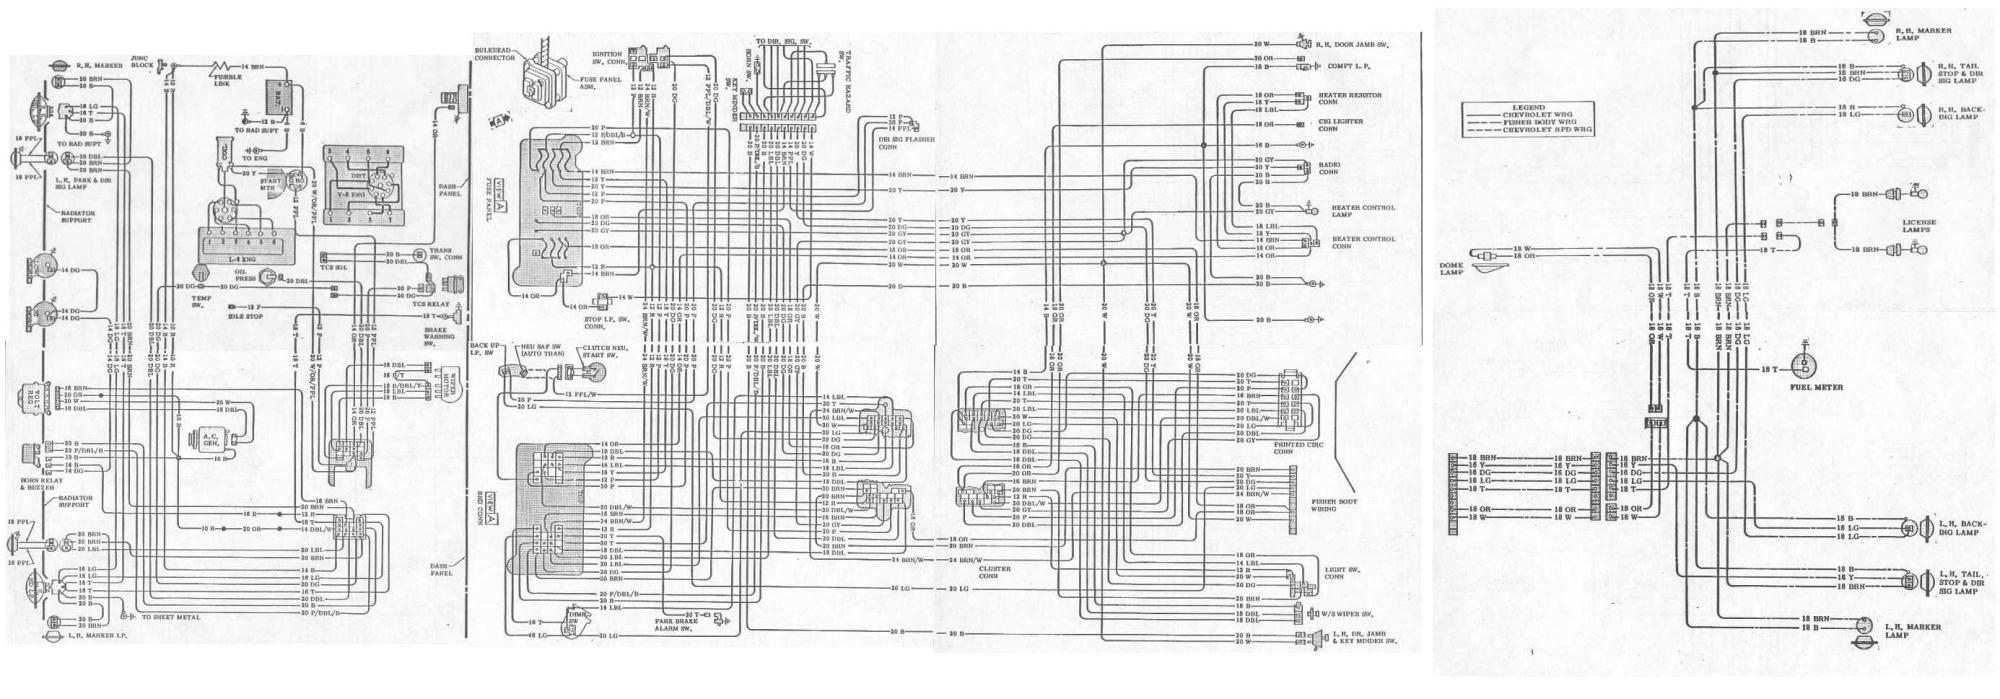 hight resolution of 1979 pontiac firebird wiring diagram wiring diagram database 1979 pontiac trans am wiring diagram